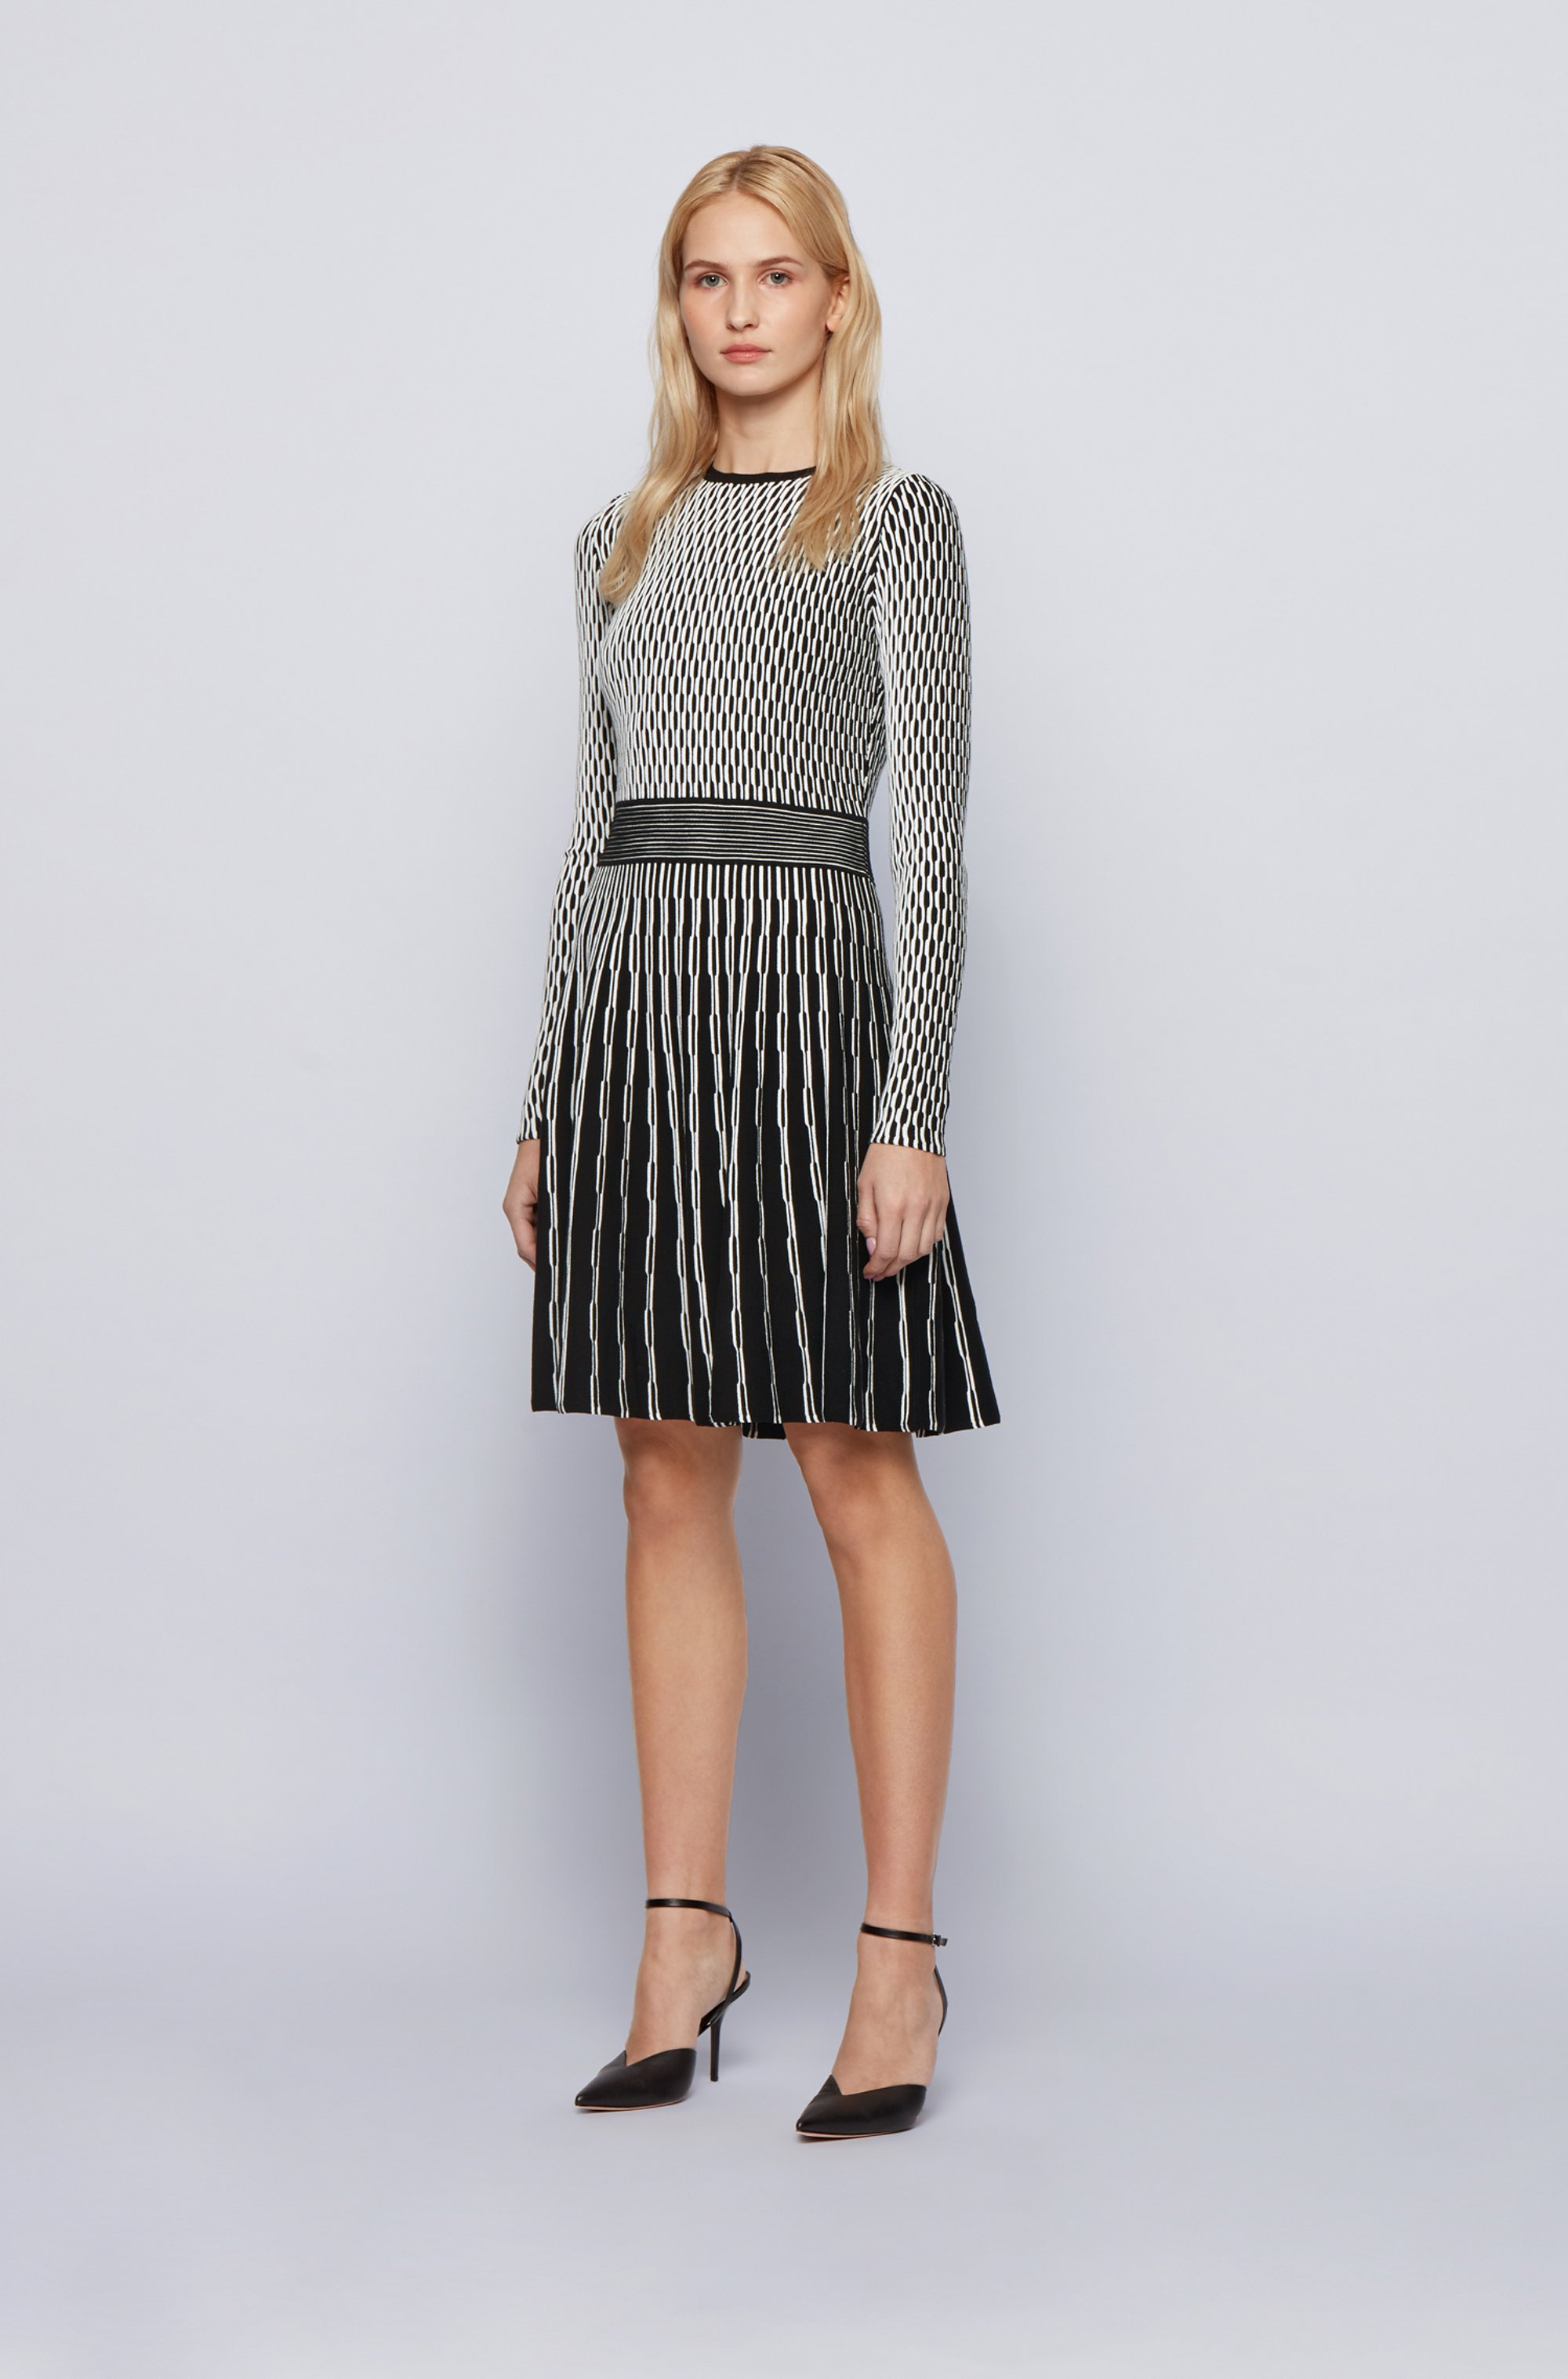 Slim-fit knitted dress with mixed structures